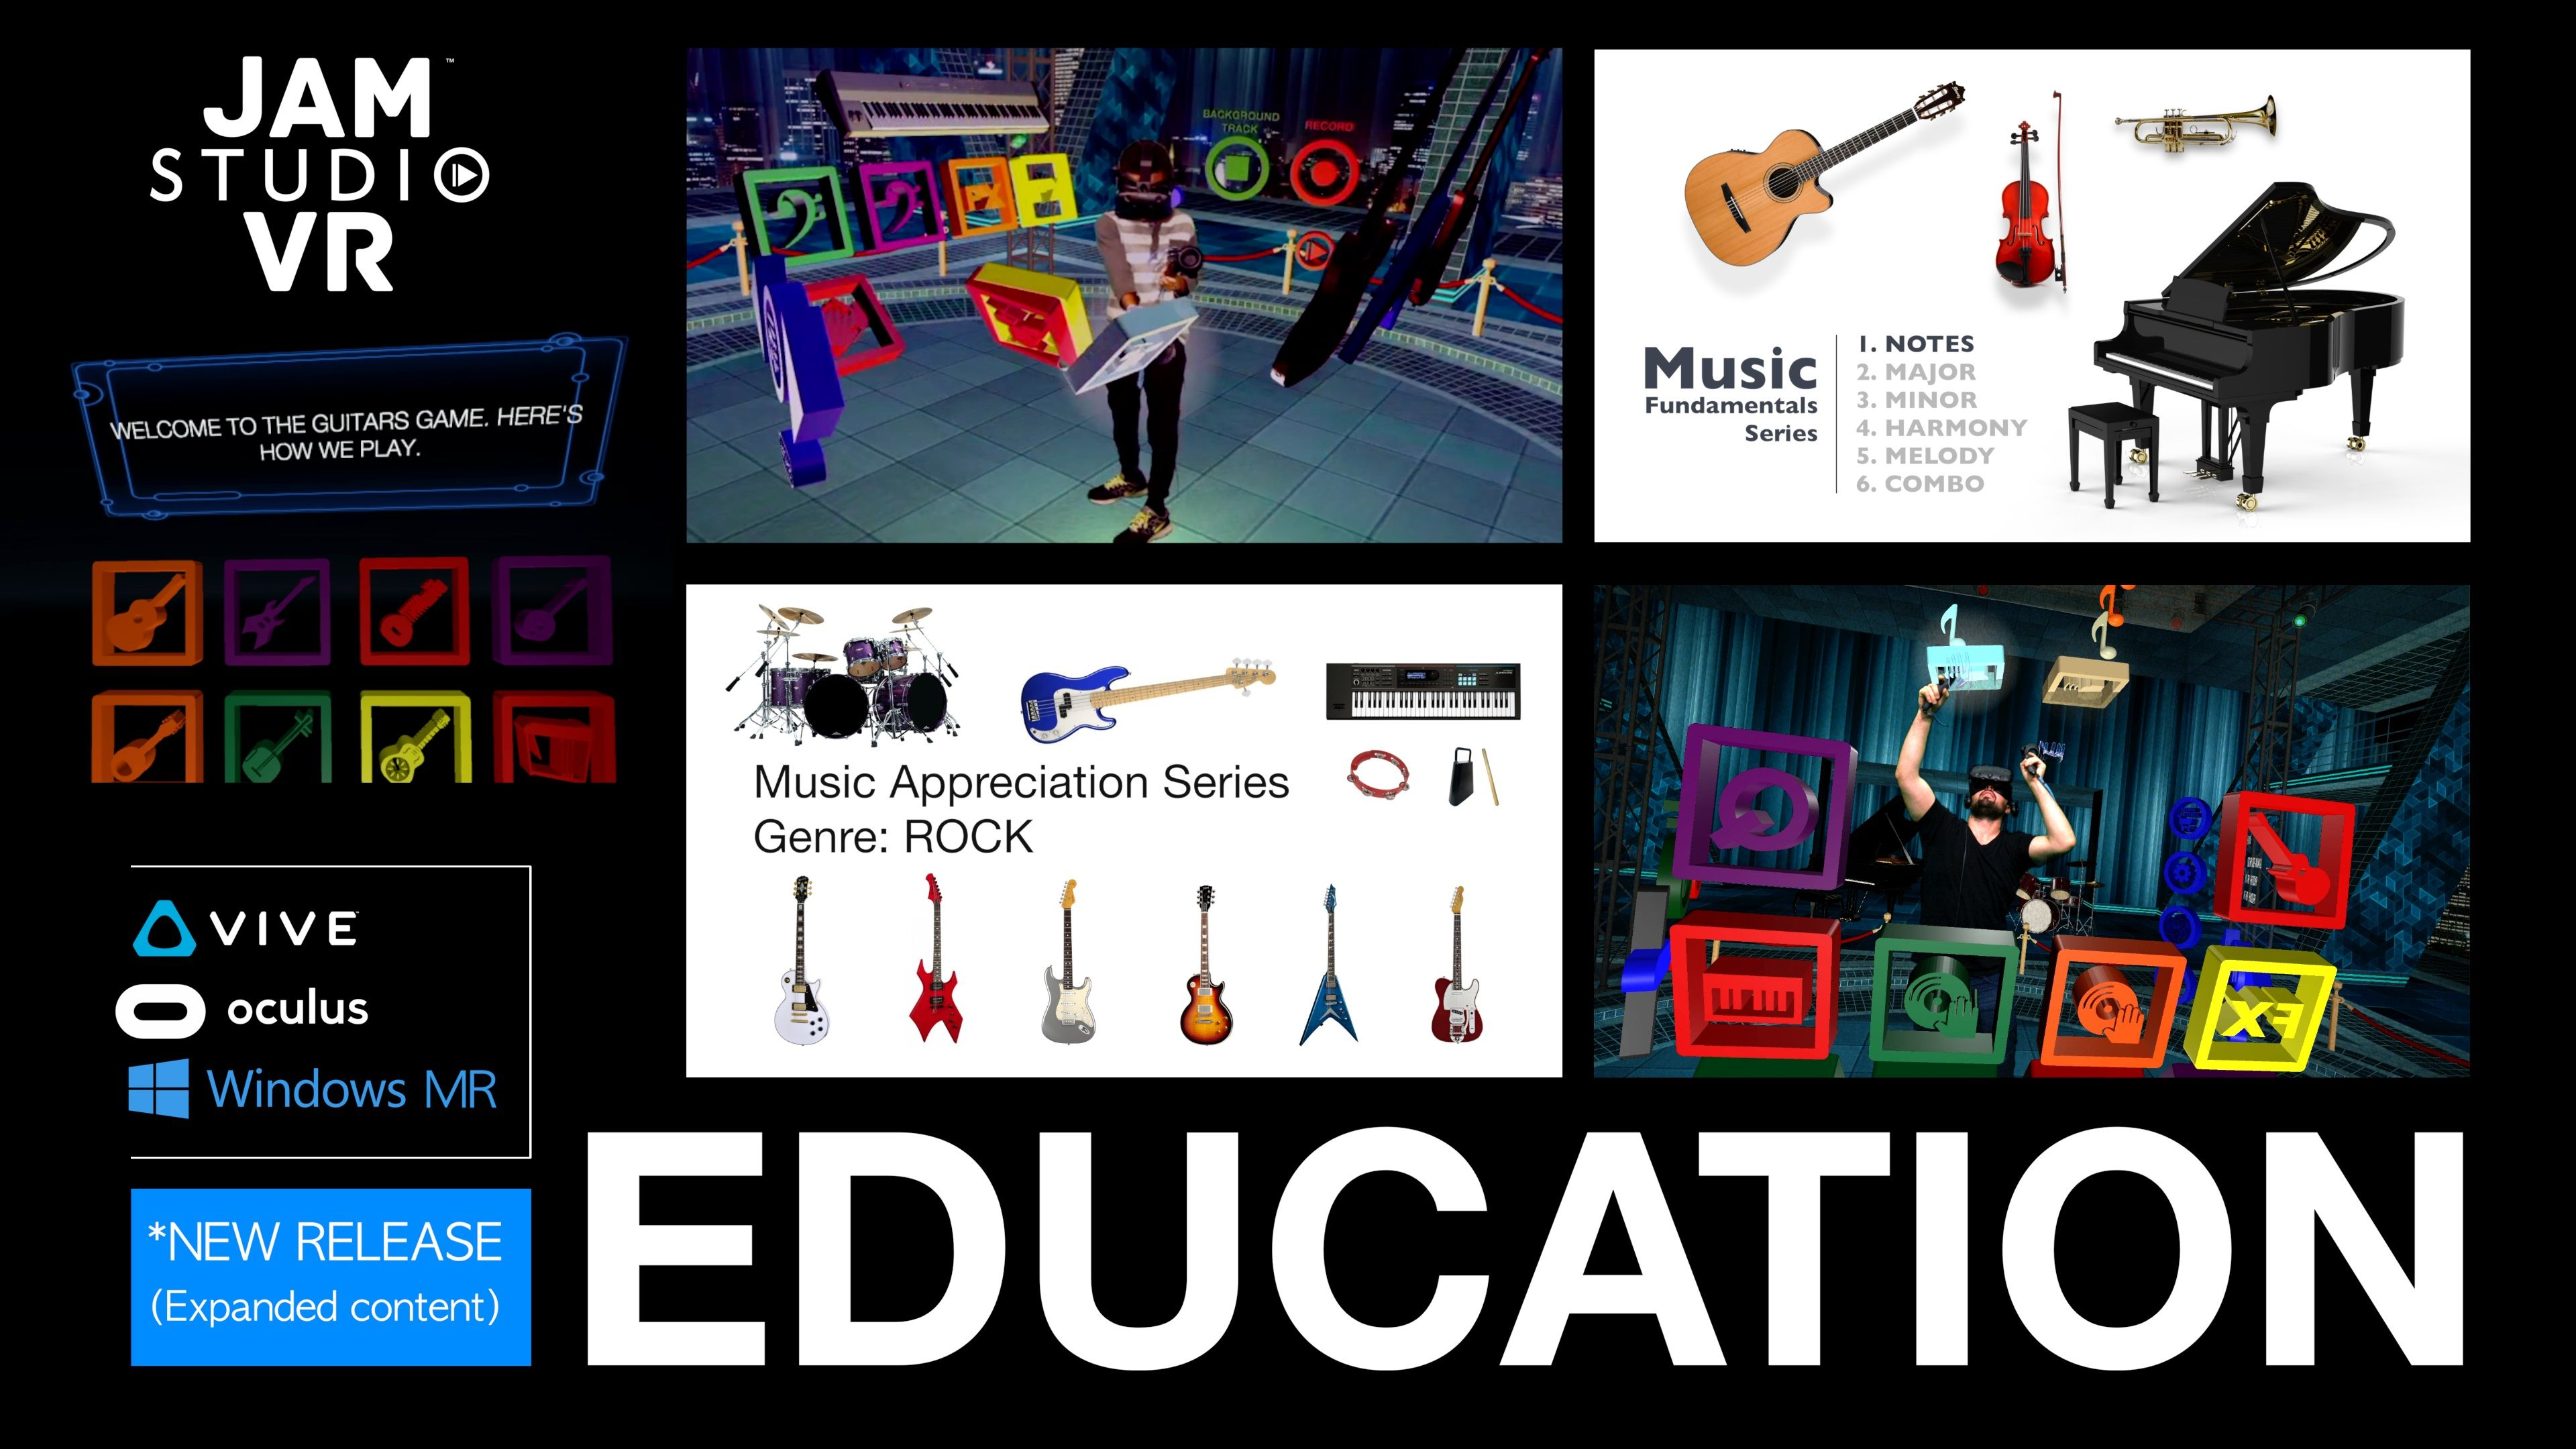 Jam Studio VR Education